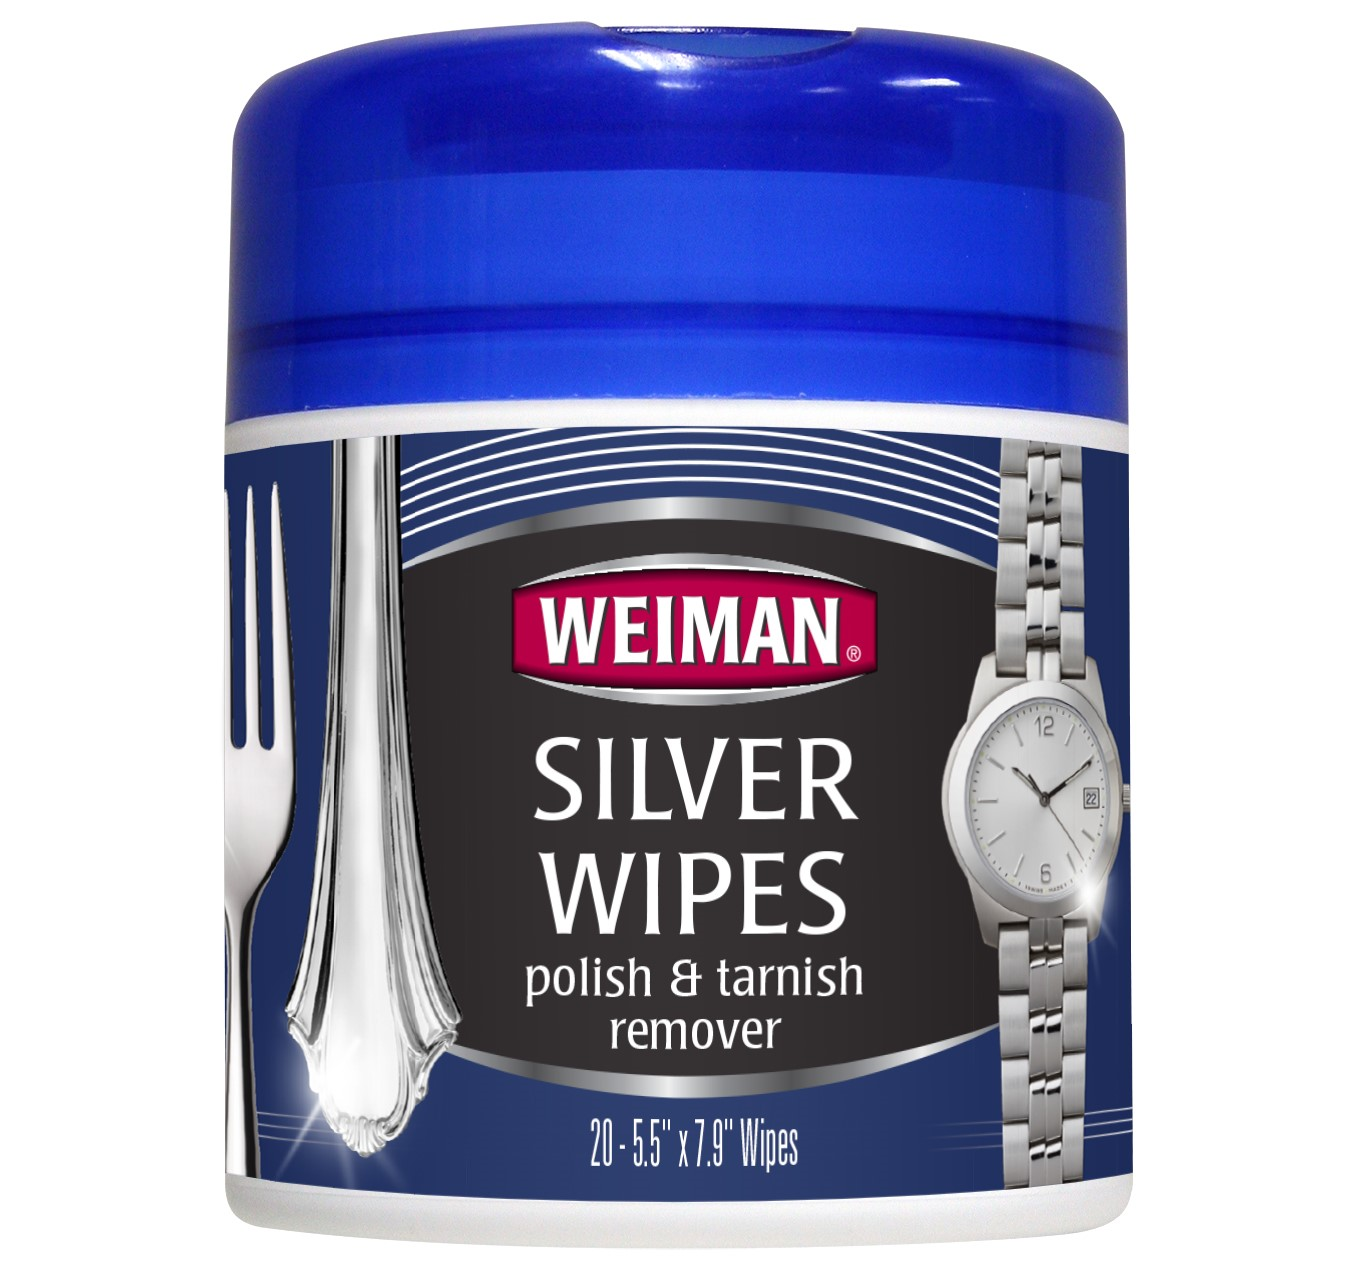 Weiman Silver Wipes Polish & Tarnish Remover, 20 Ct